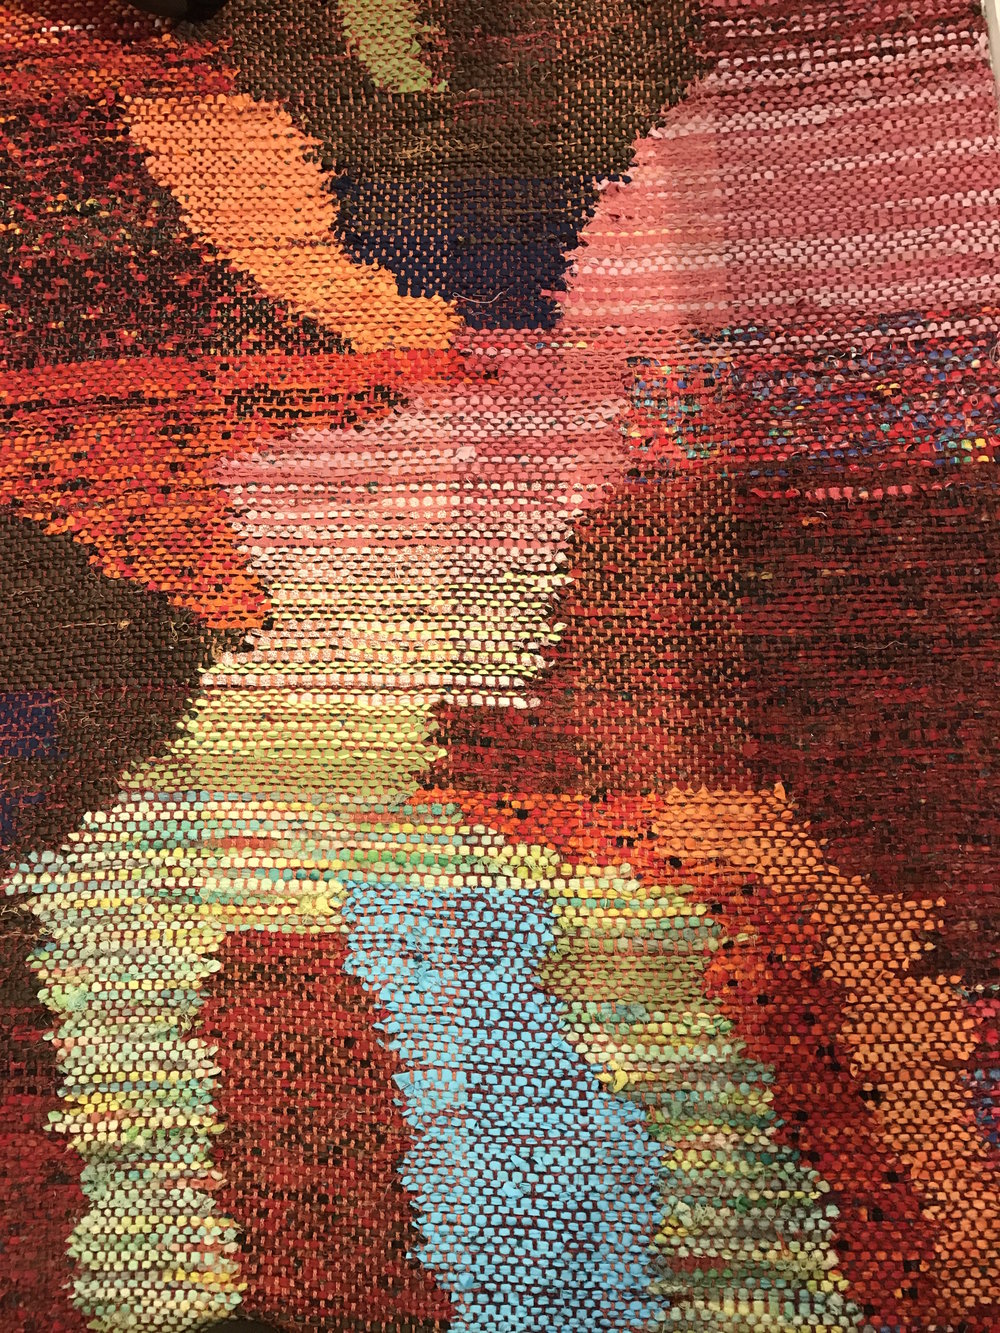 Detail of Cienfuegos Rug by Paula Schubatis